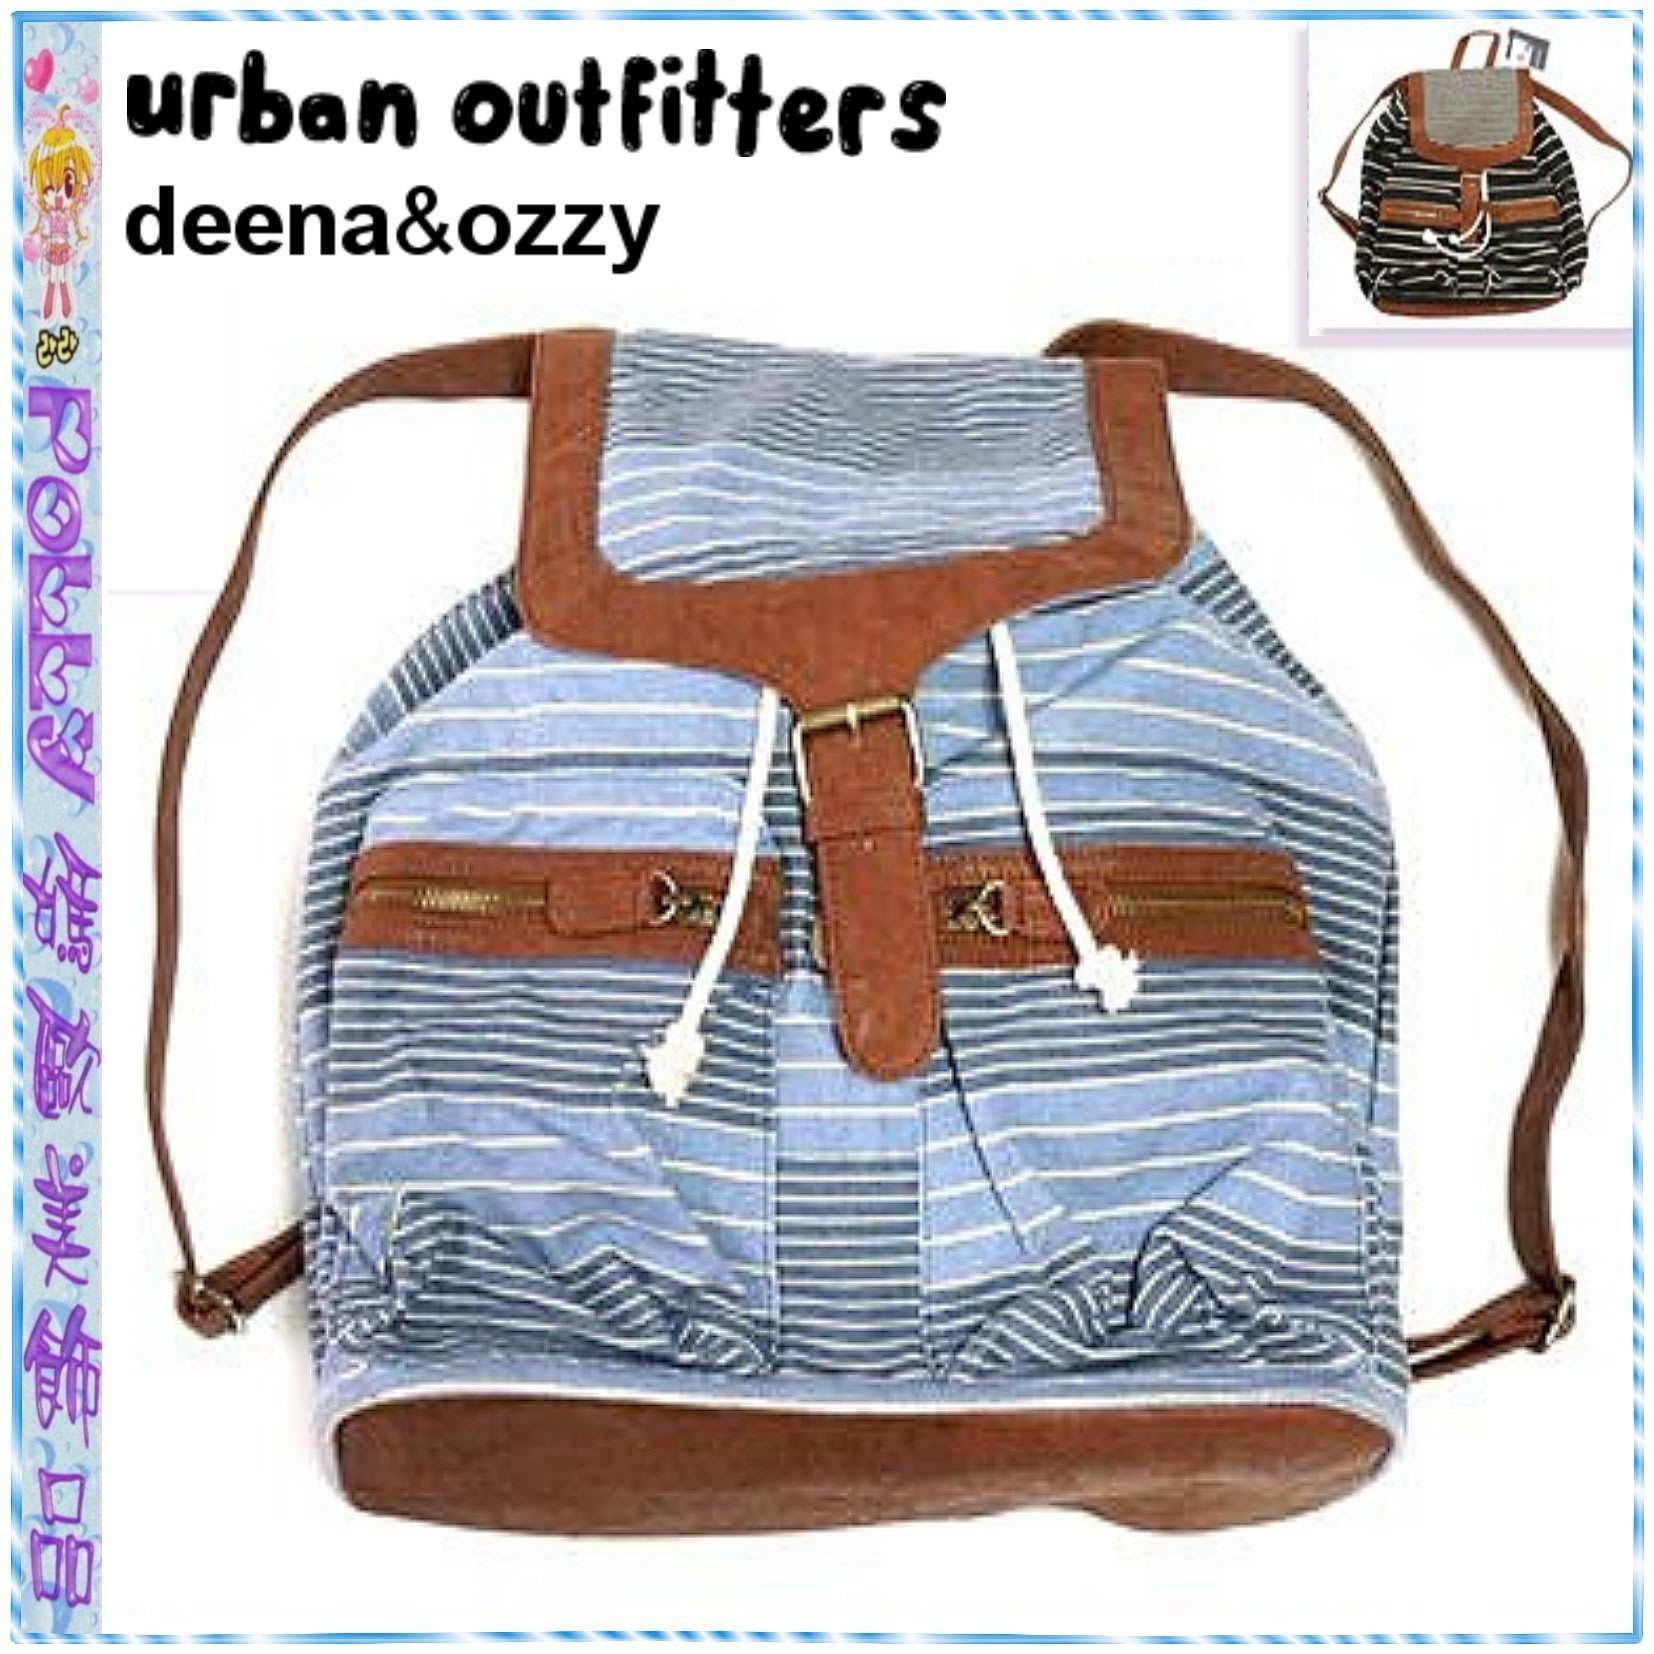 ☆POLLY媽☆Urban outfitters COOPERATIVE DEENA&OZZY棕色皮質/條紋帆布後背包